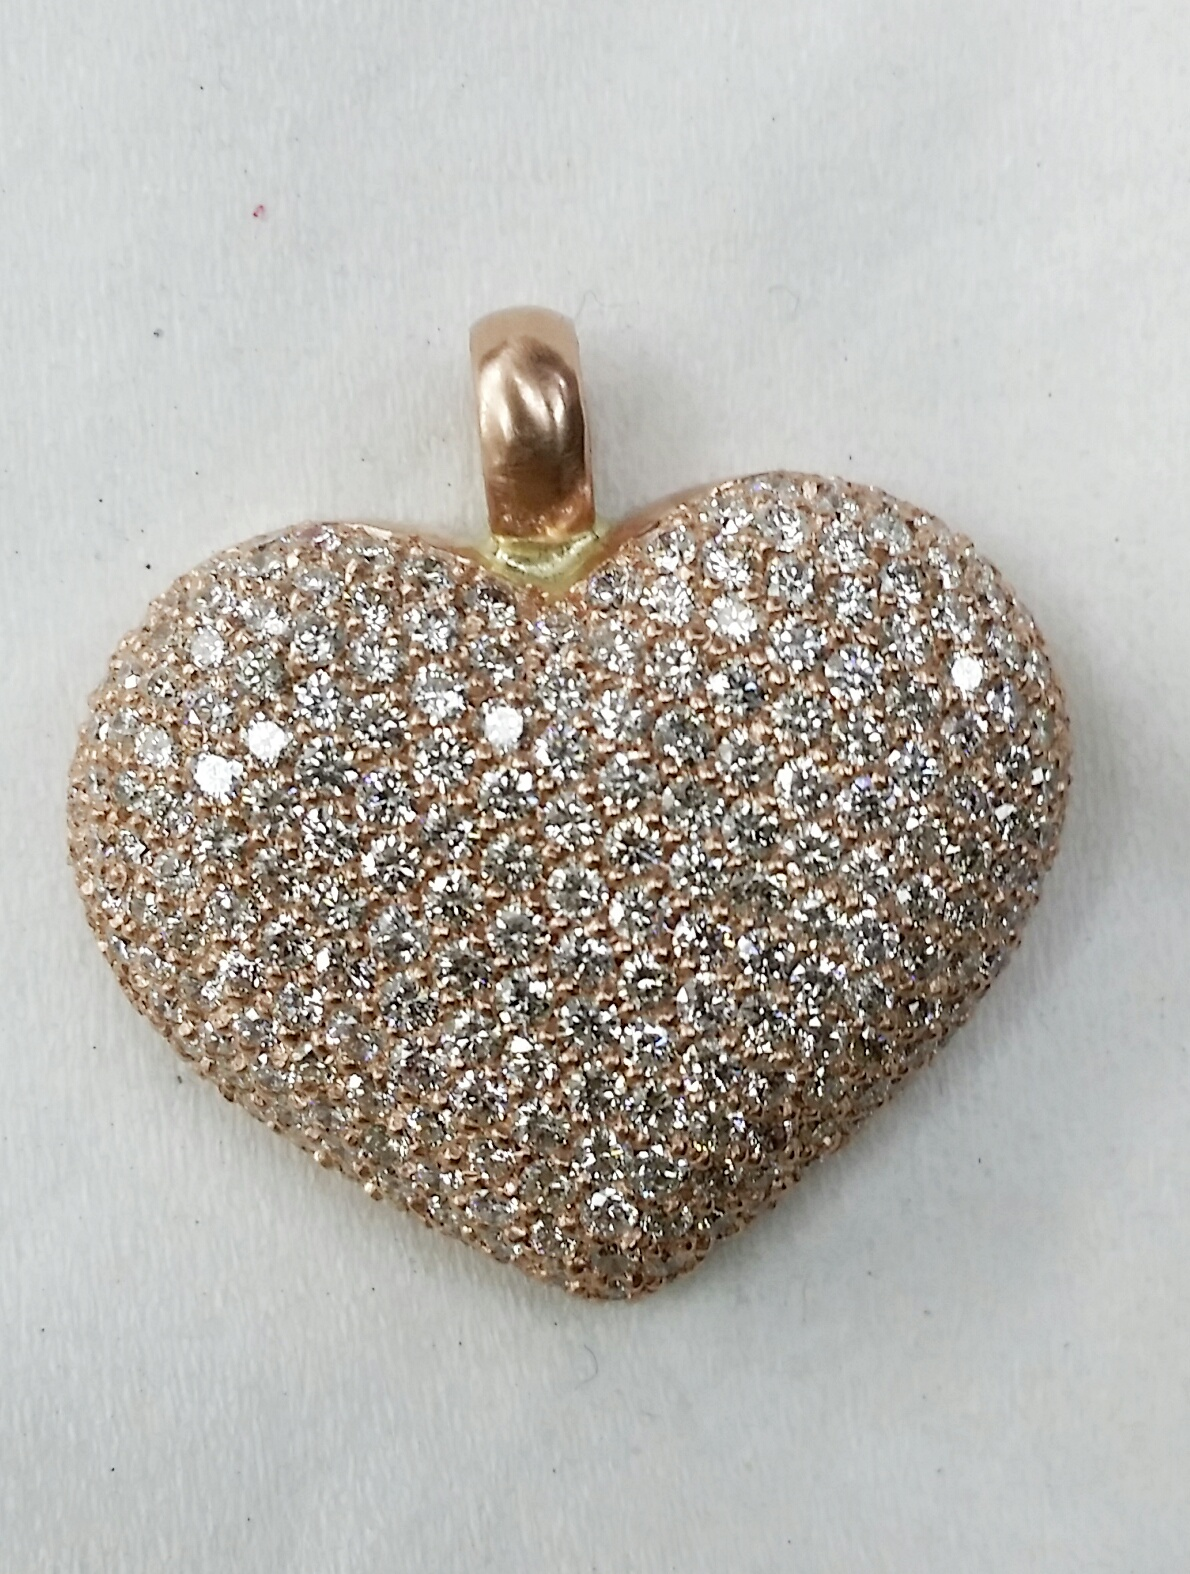 Stone cold iced out heart.